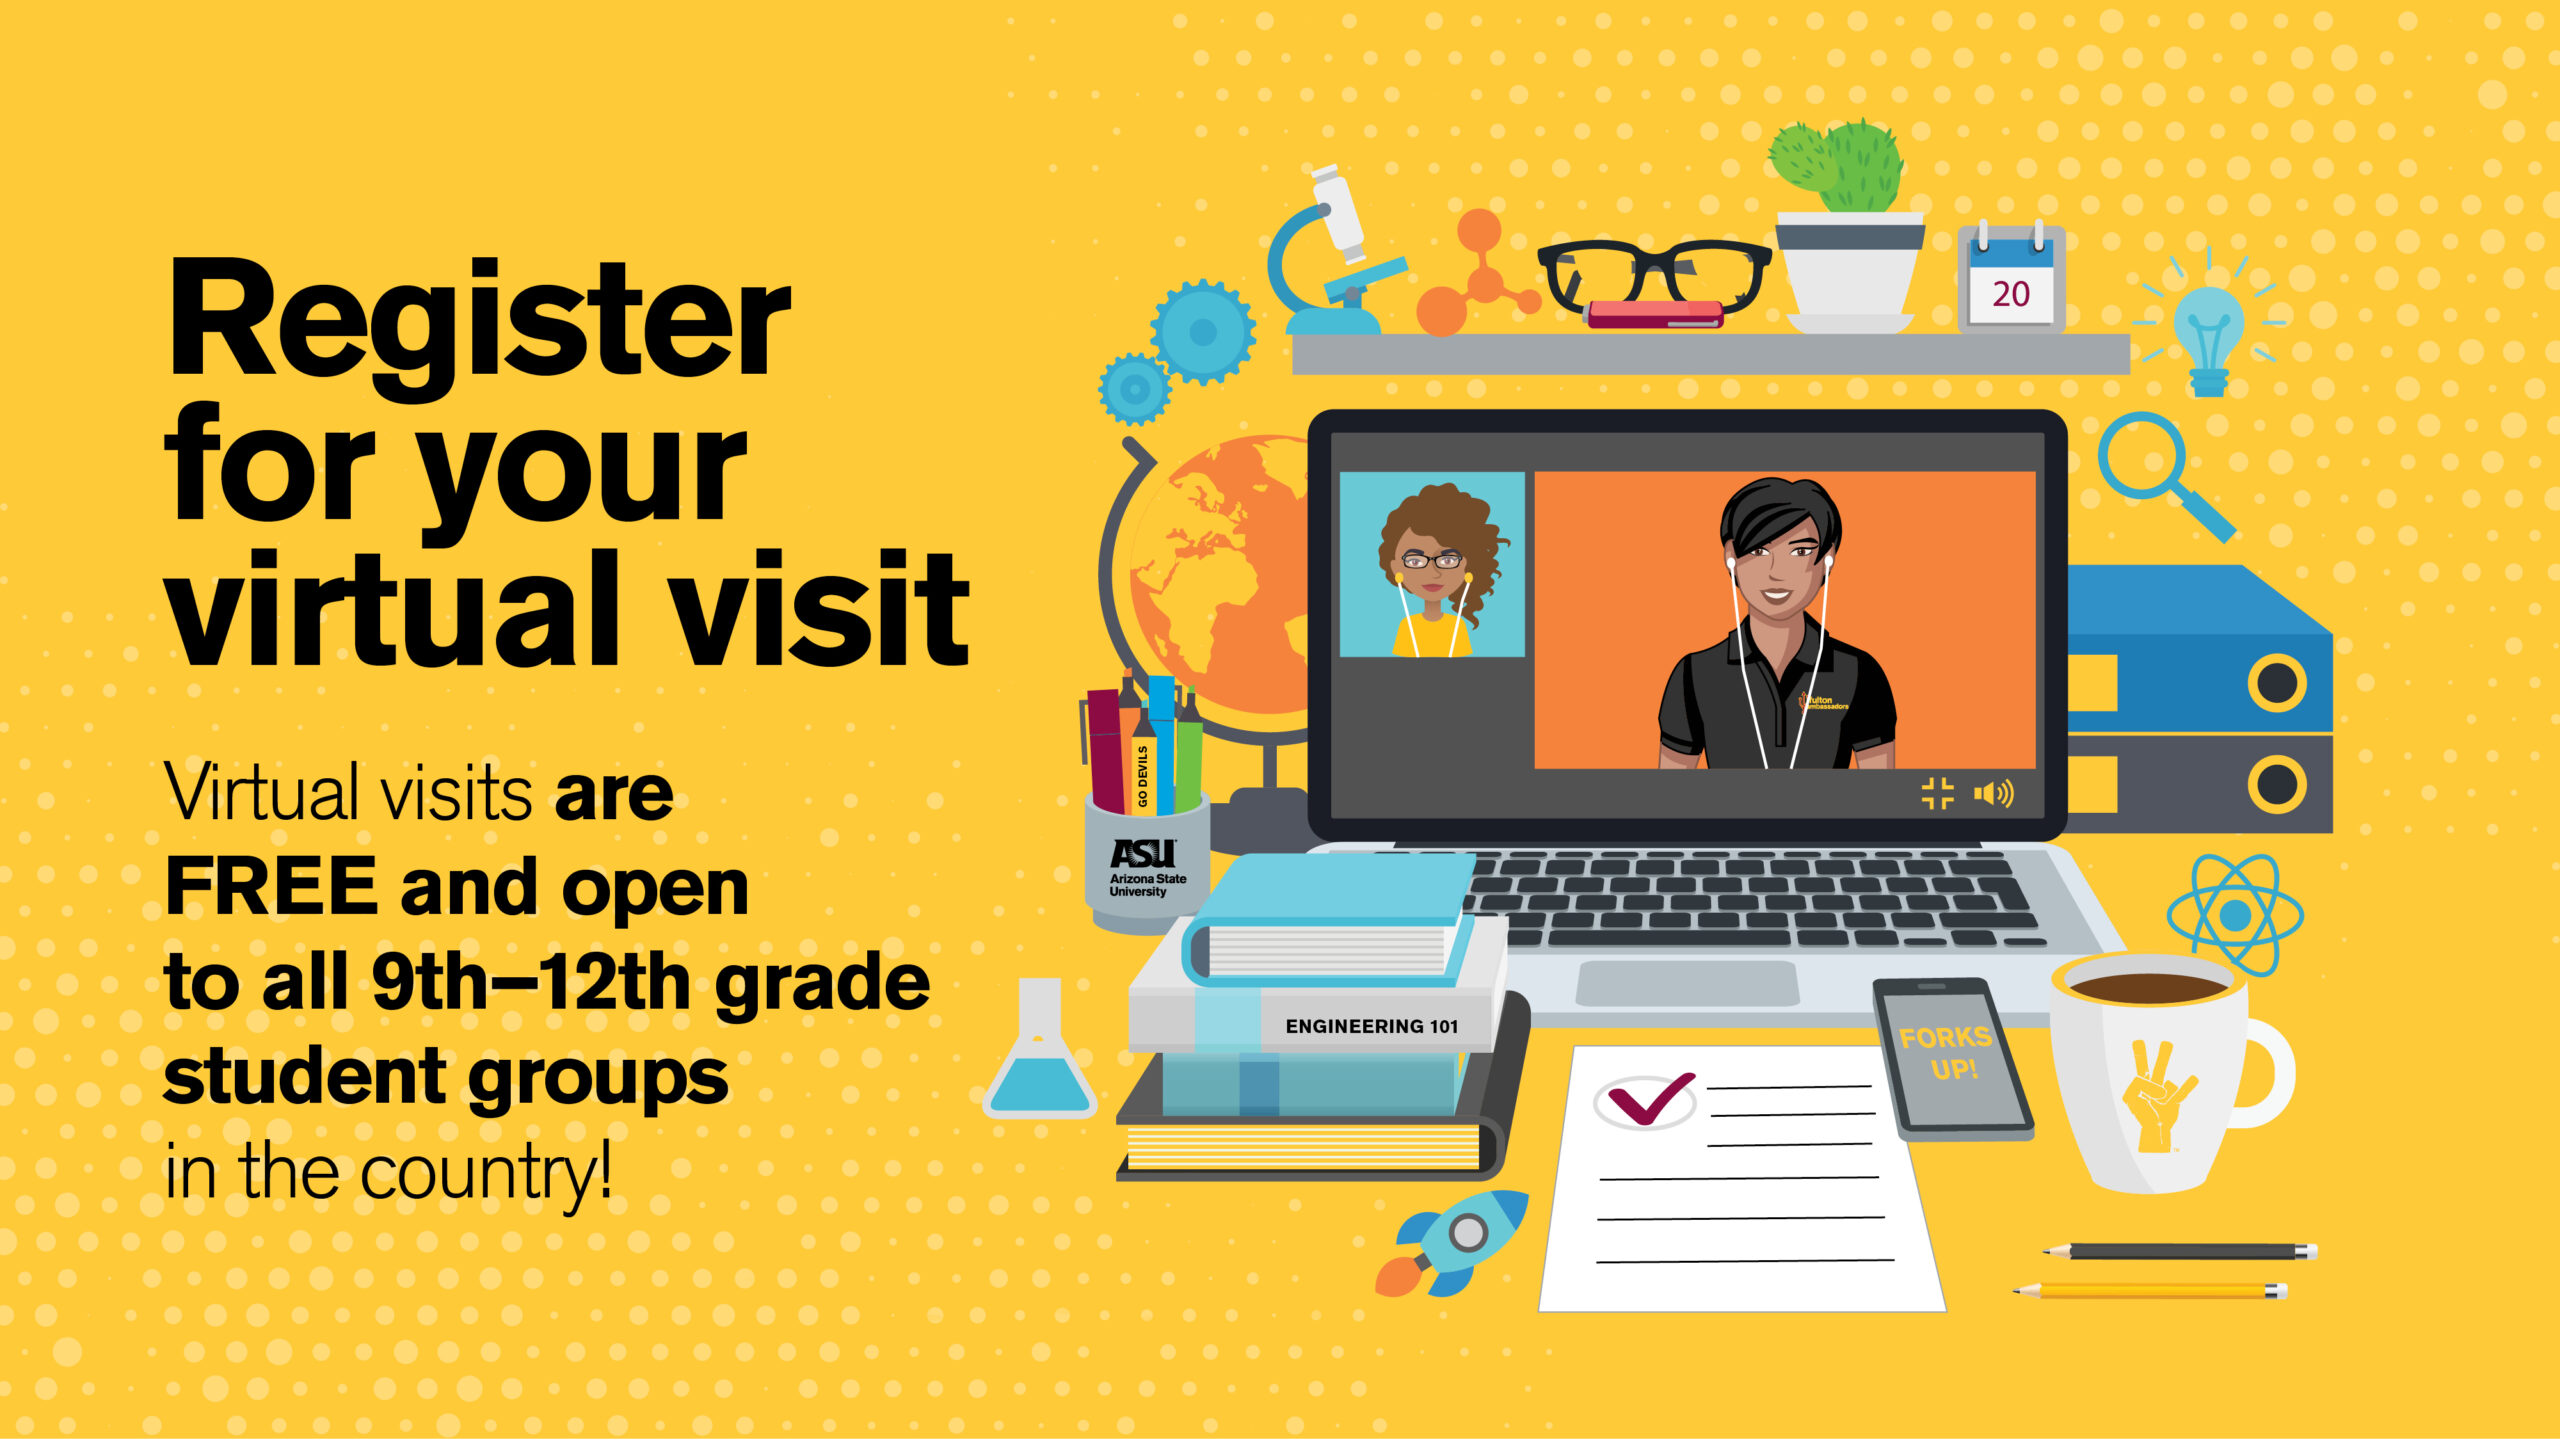 Sign up for the More to Explore virtual session to learn about campus